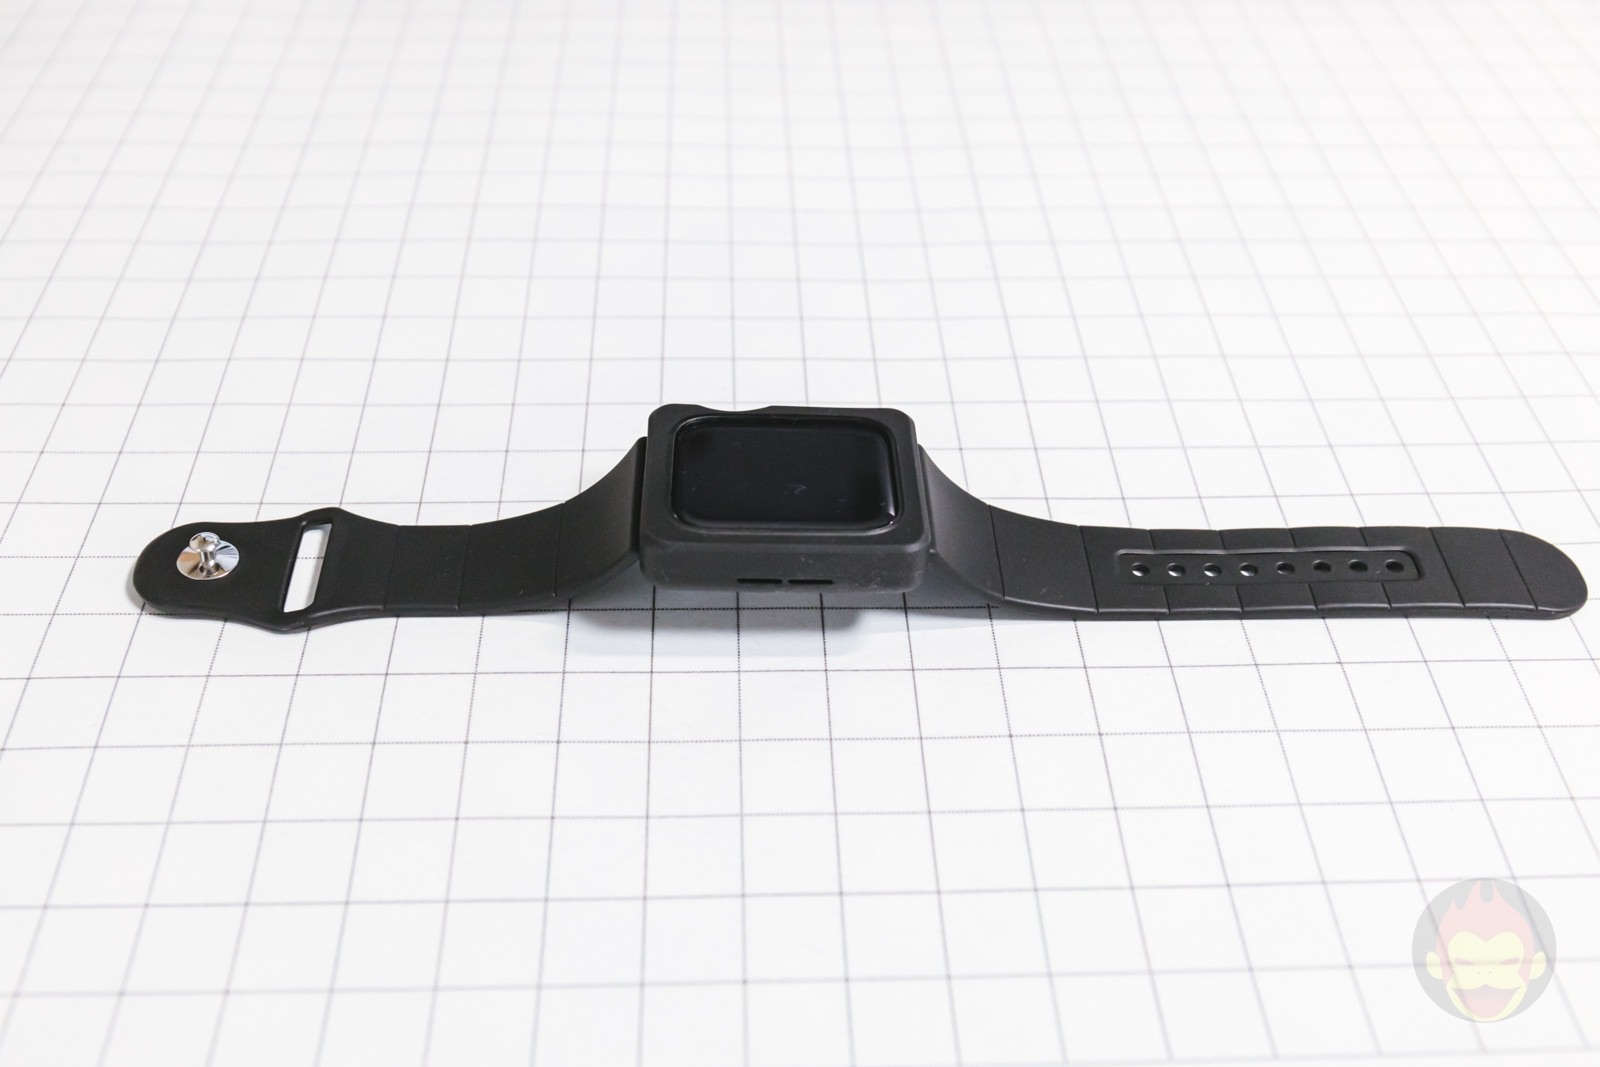 TILE AppleWatch Band Review 01